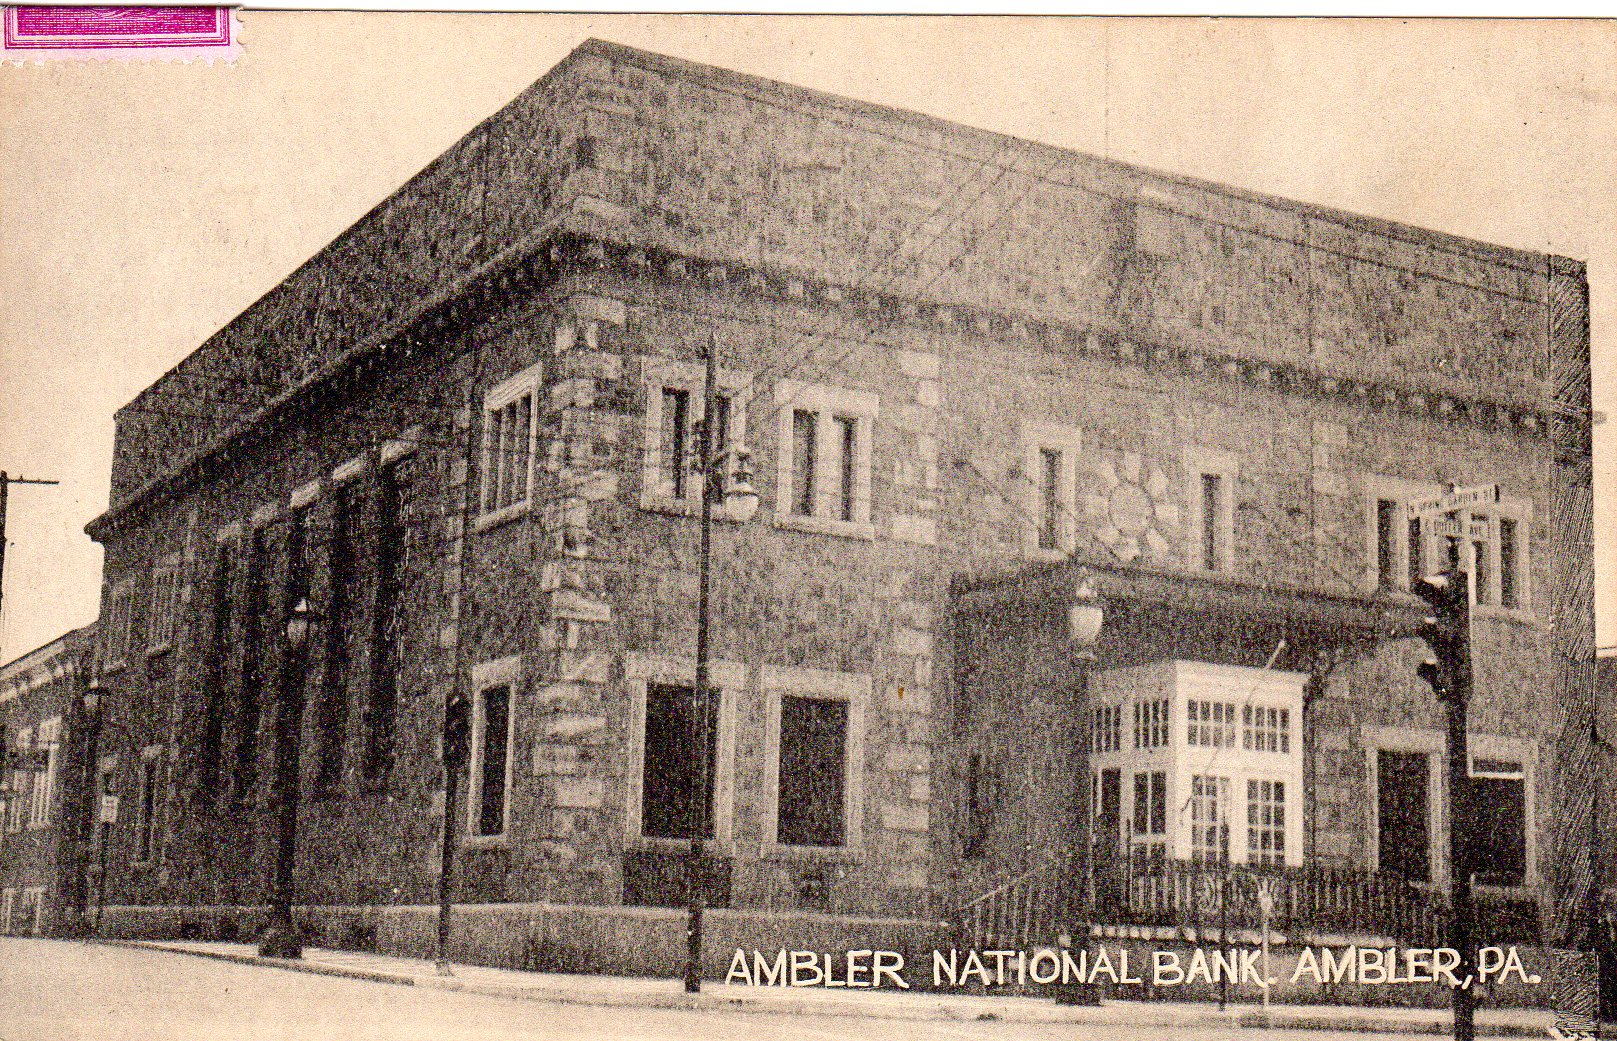 Post Card Collection (E Simon)_2682_56_Ambler National Bank, Ambler, Pa_31 May 1961